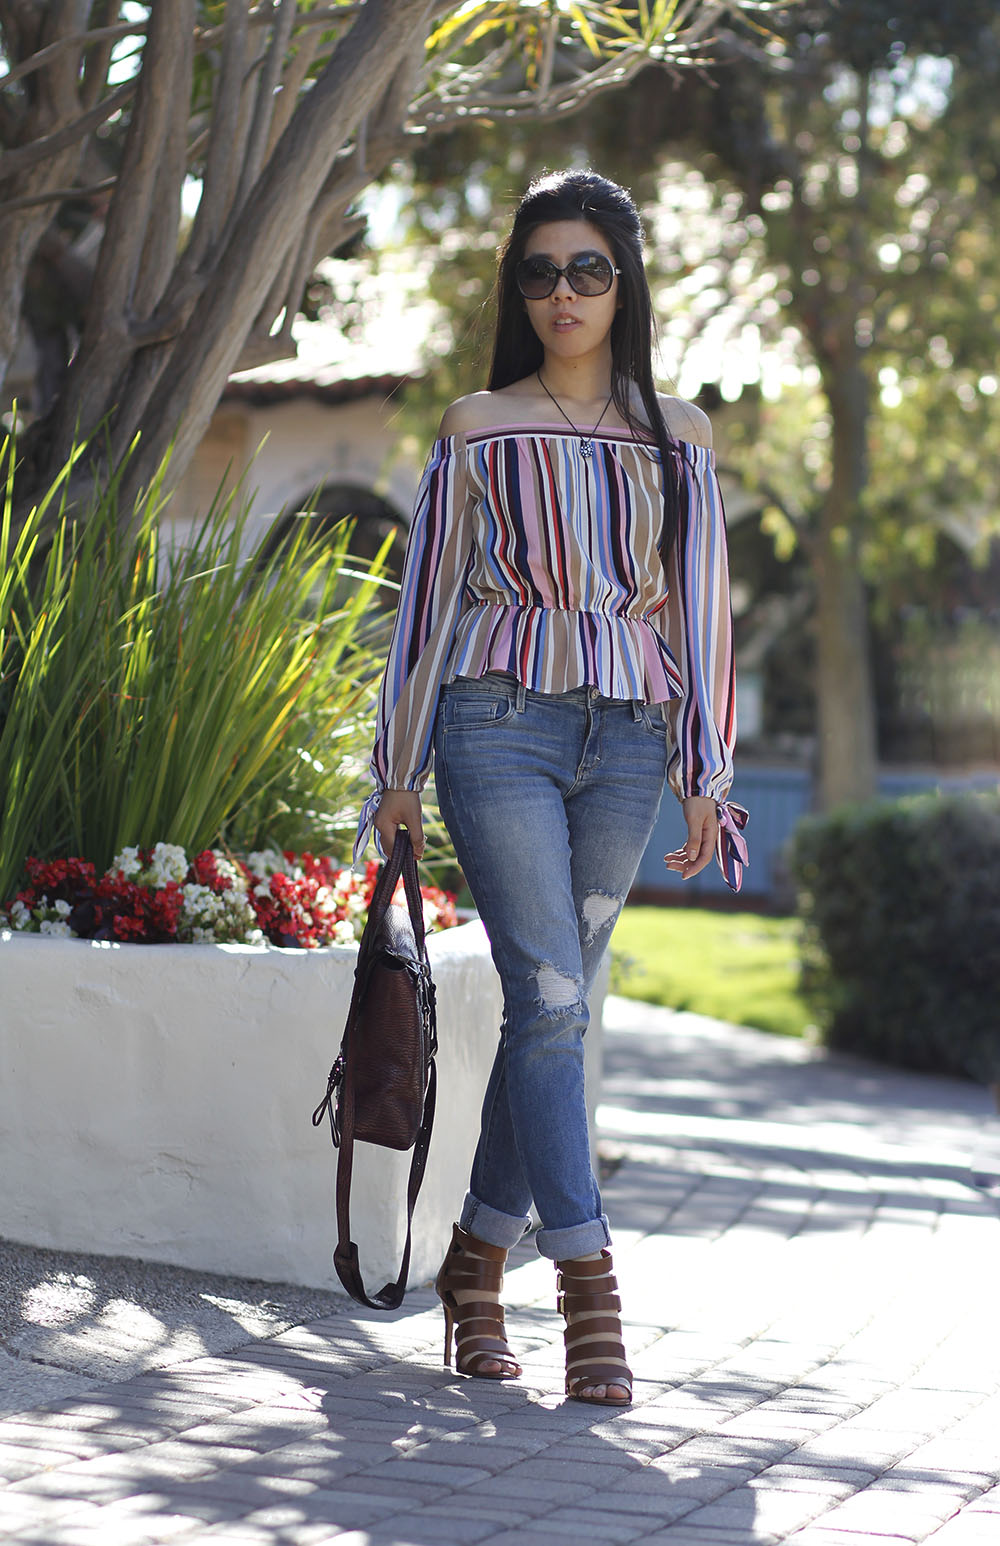 off the shoulder vertical stripes top with bows_Adrienne nguyen_Invictus